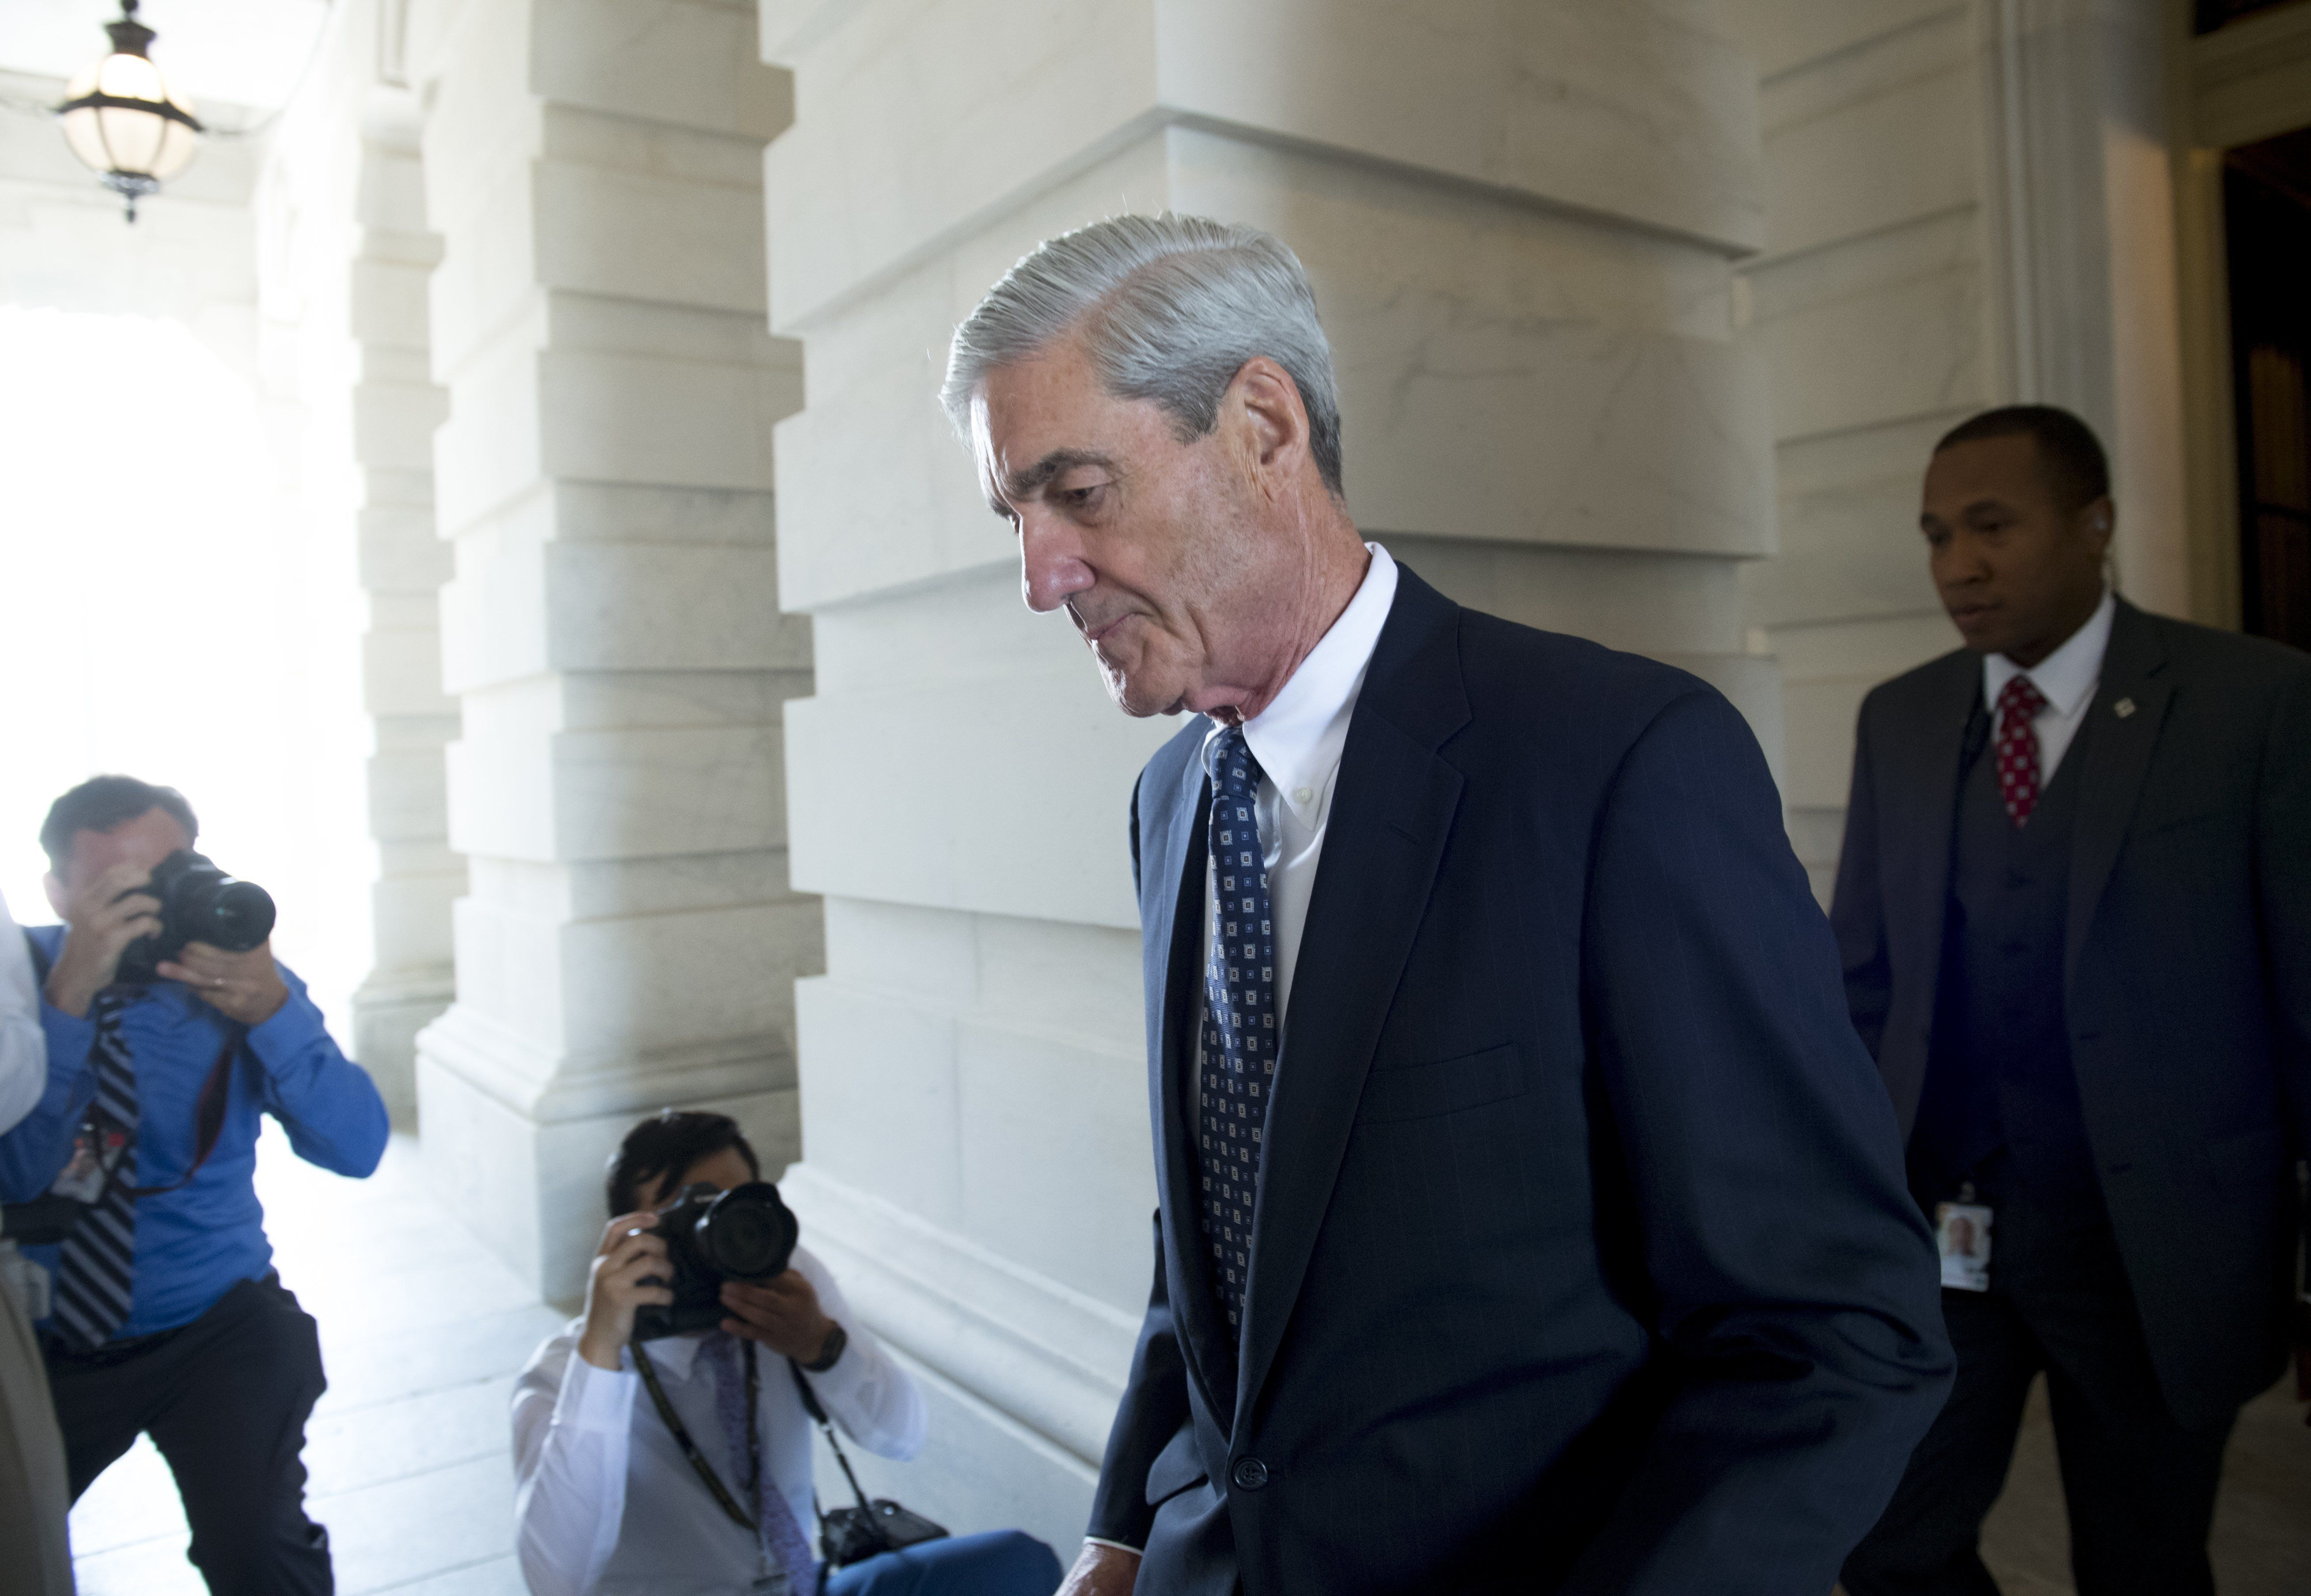 Former FBI Director Robert Mueller, special counsel on the Russian investigation, leaves following a meeting with members of the US Senate Judiciary Committee at the US Capitol in Washington, DC on June 21, 2017. / AFP PHOTO / SAUL LOEB        (Photo credit should read SAUL LOEB/AFP/Getty Images)